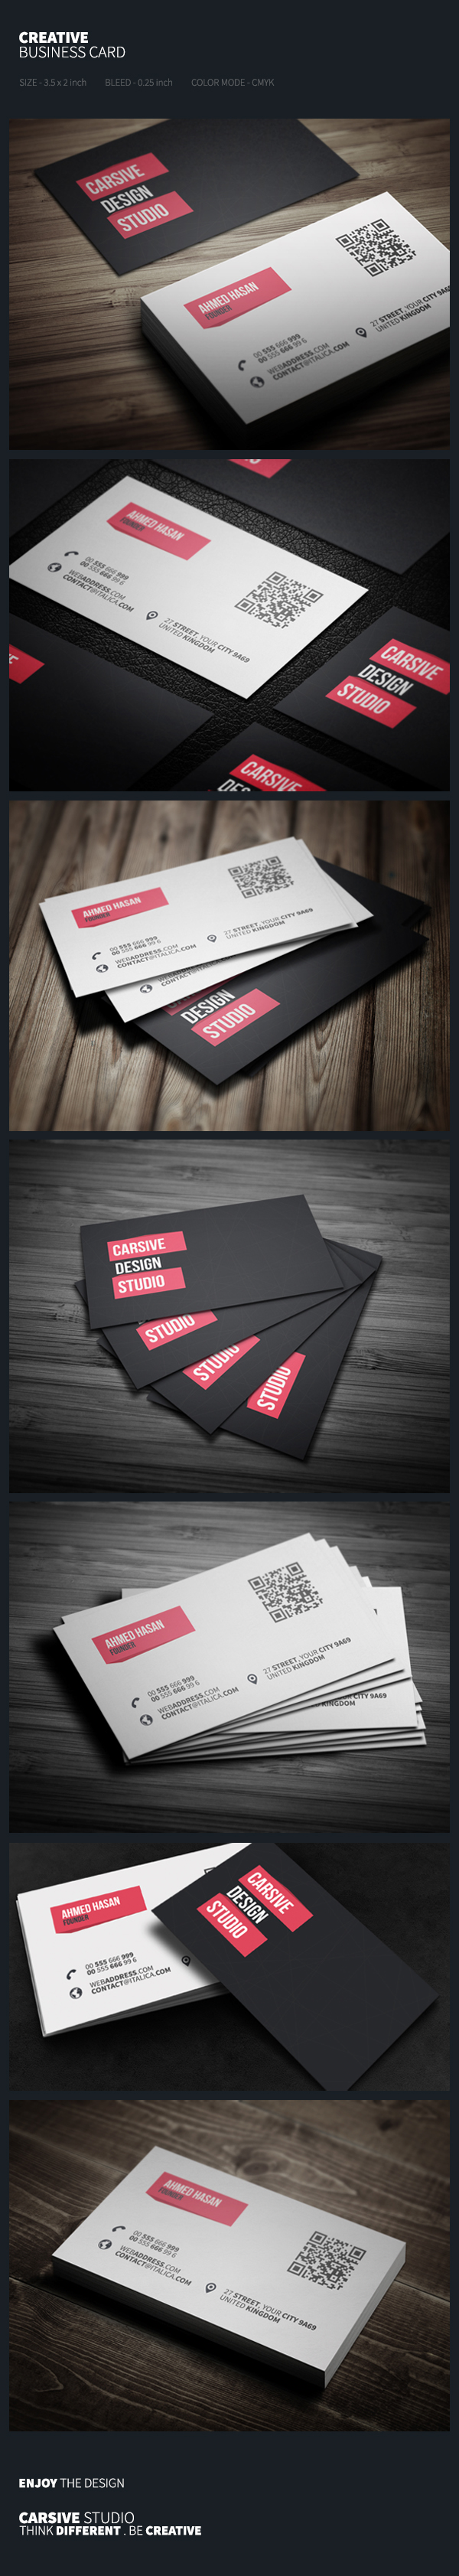 business card template design sleek clean black abstract White